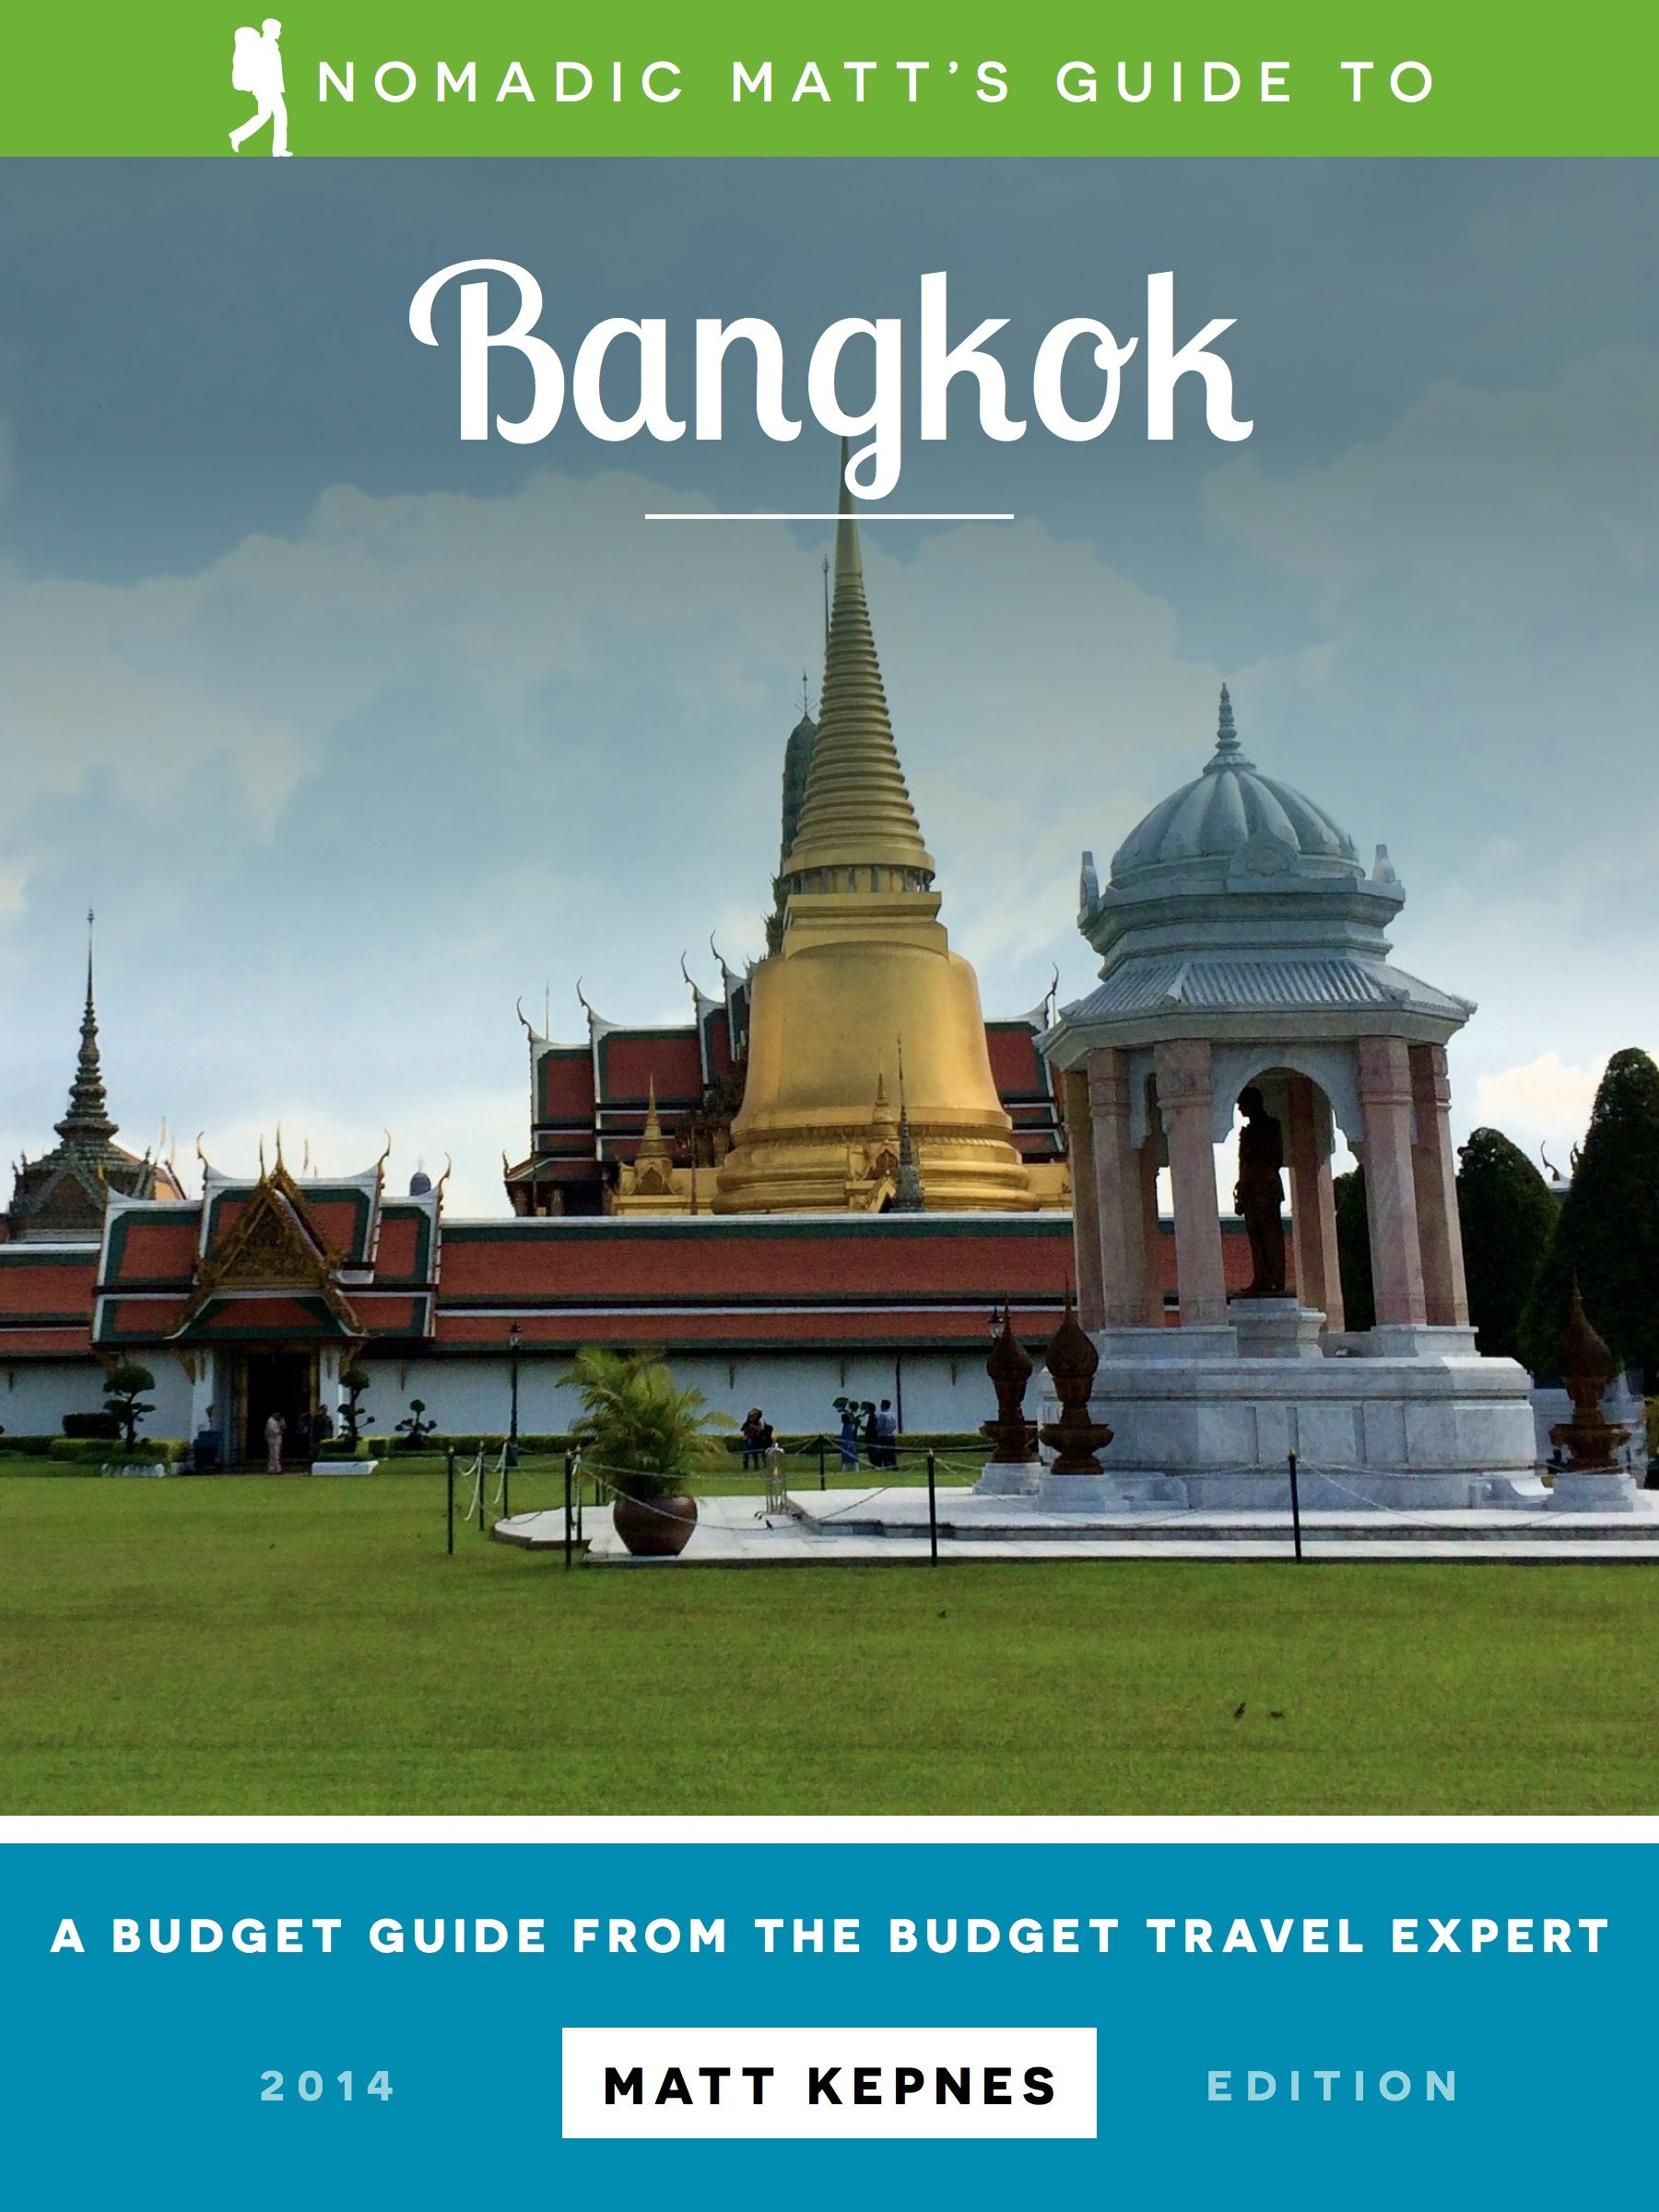 BIG NEWS: New Budget Travel Guides and Book Updates!